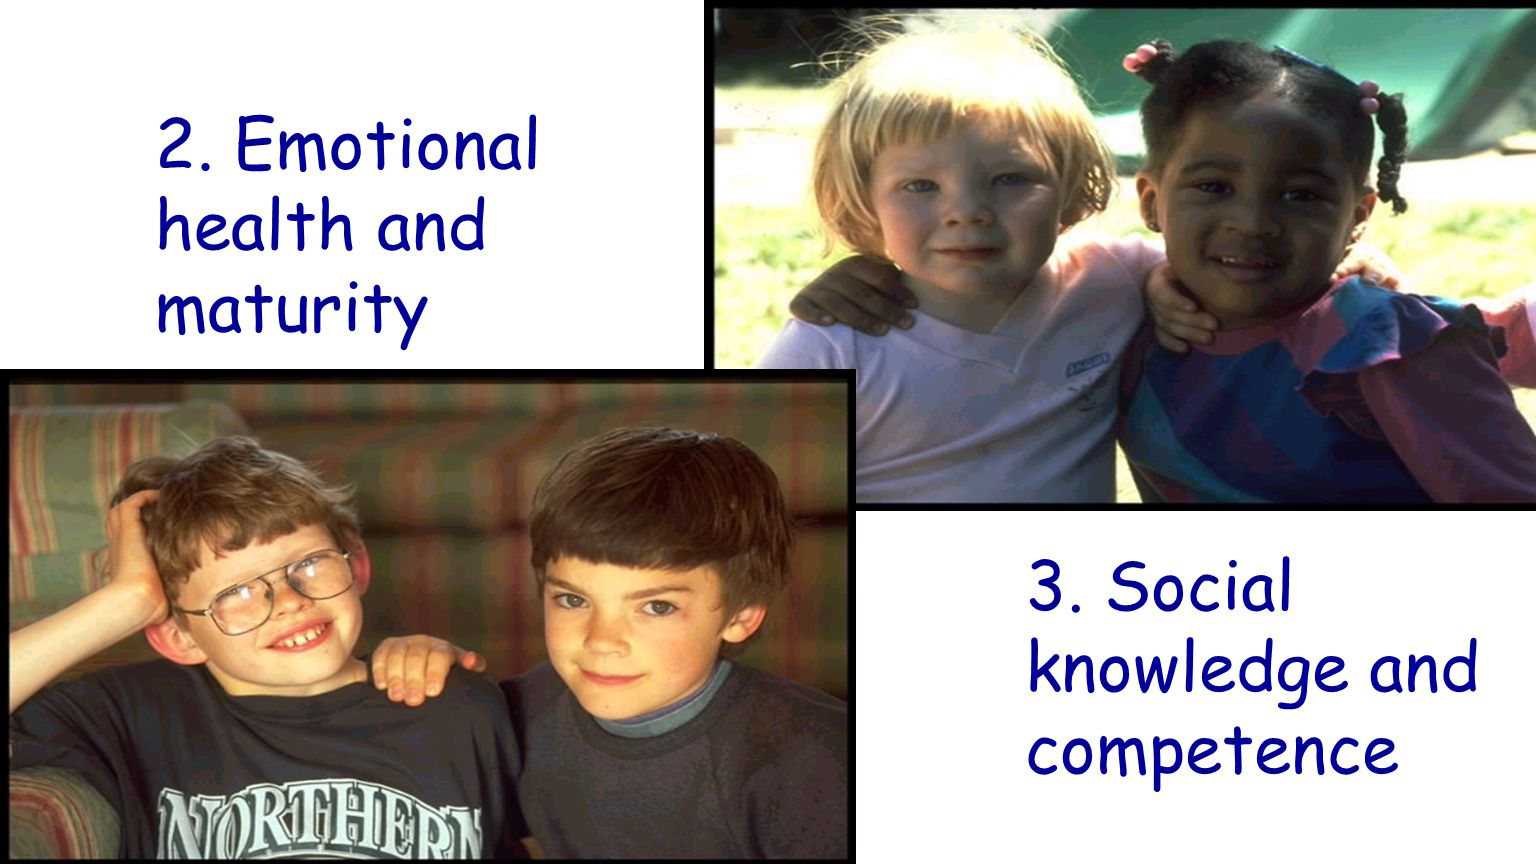 2. Emotional health and maturity 3. Social knowledge and competence